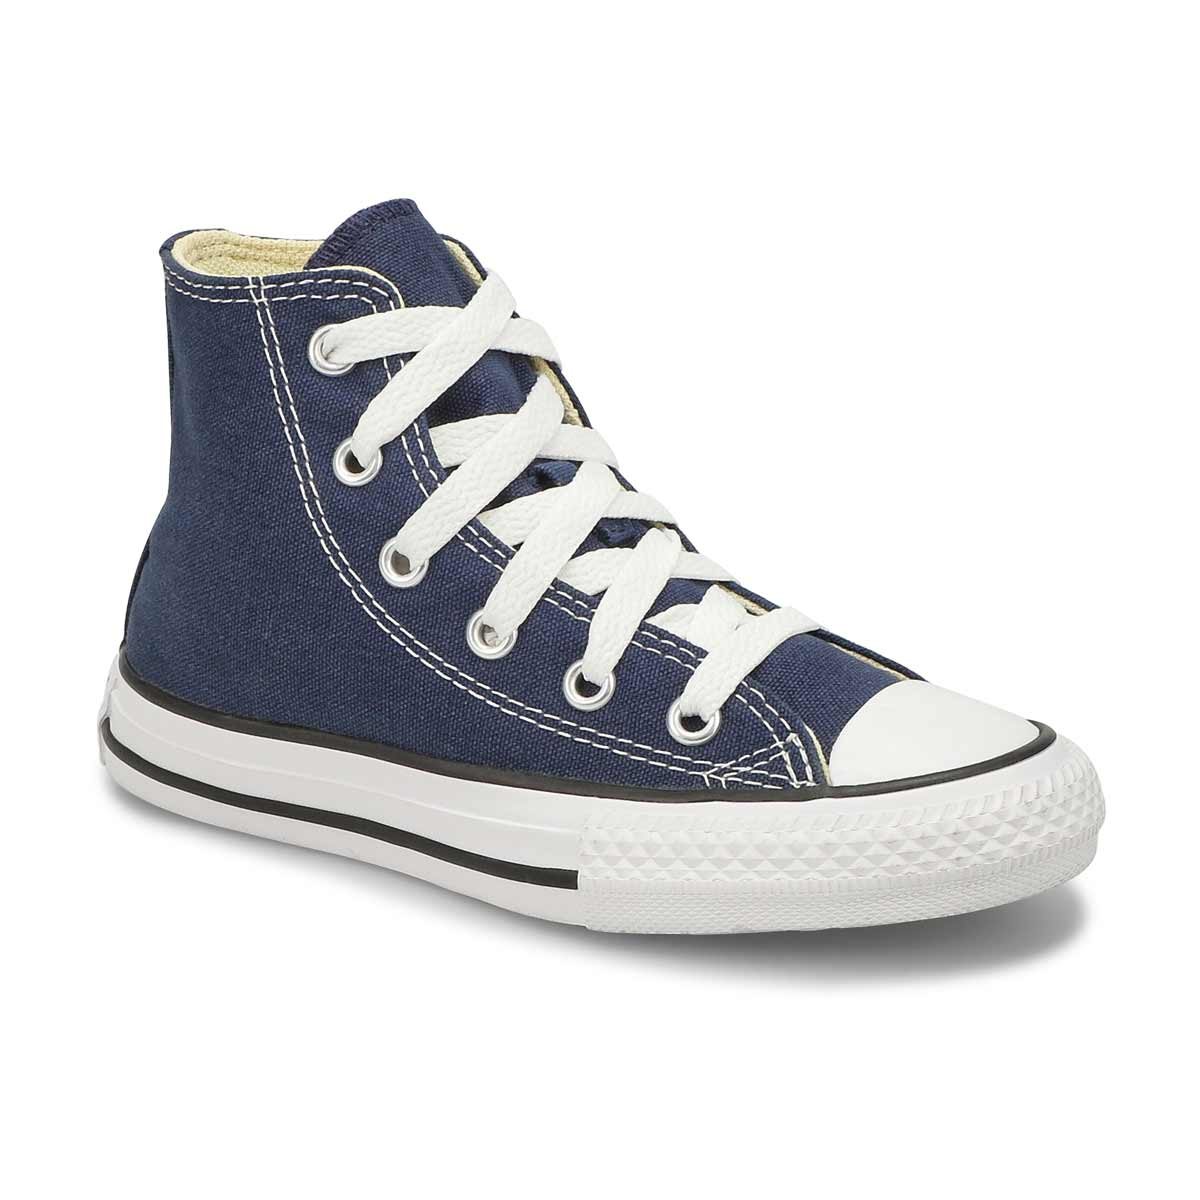 Espadrilles CHUCK TAYLOR ALL STAR, marine, enfants